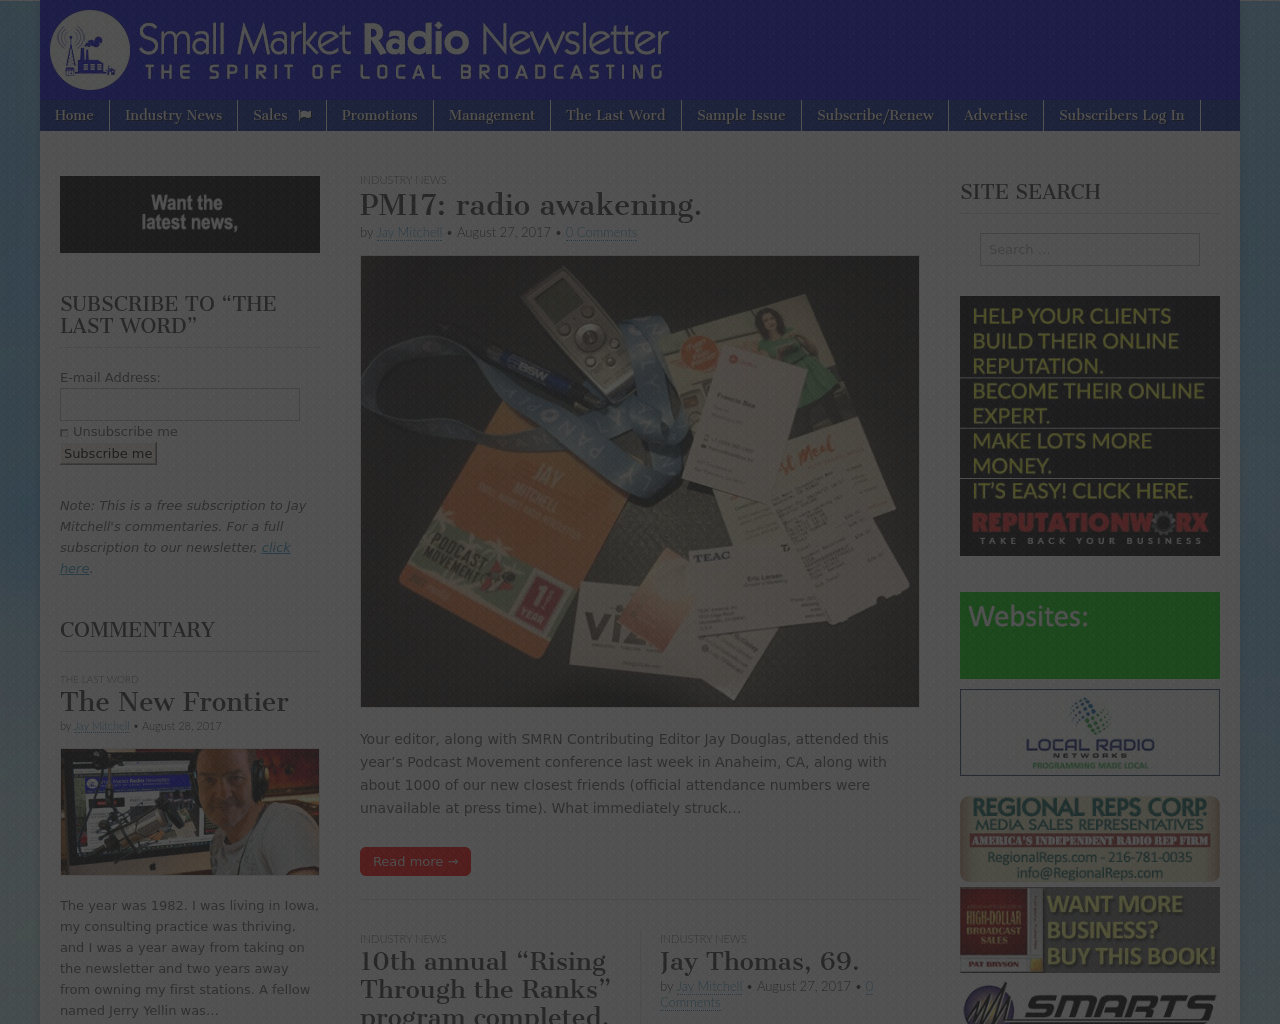 Small-Market-Radio-Newsletter-Advertising-Reviews-Pricing